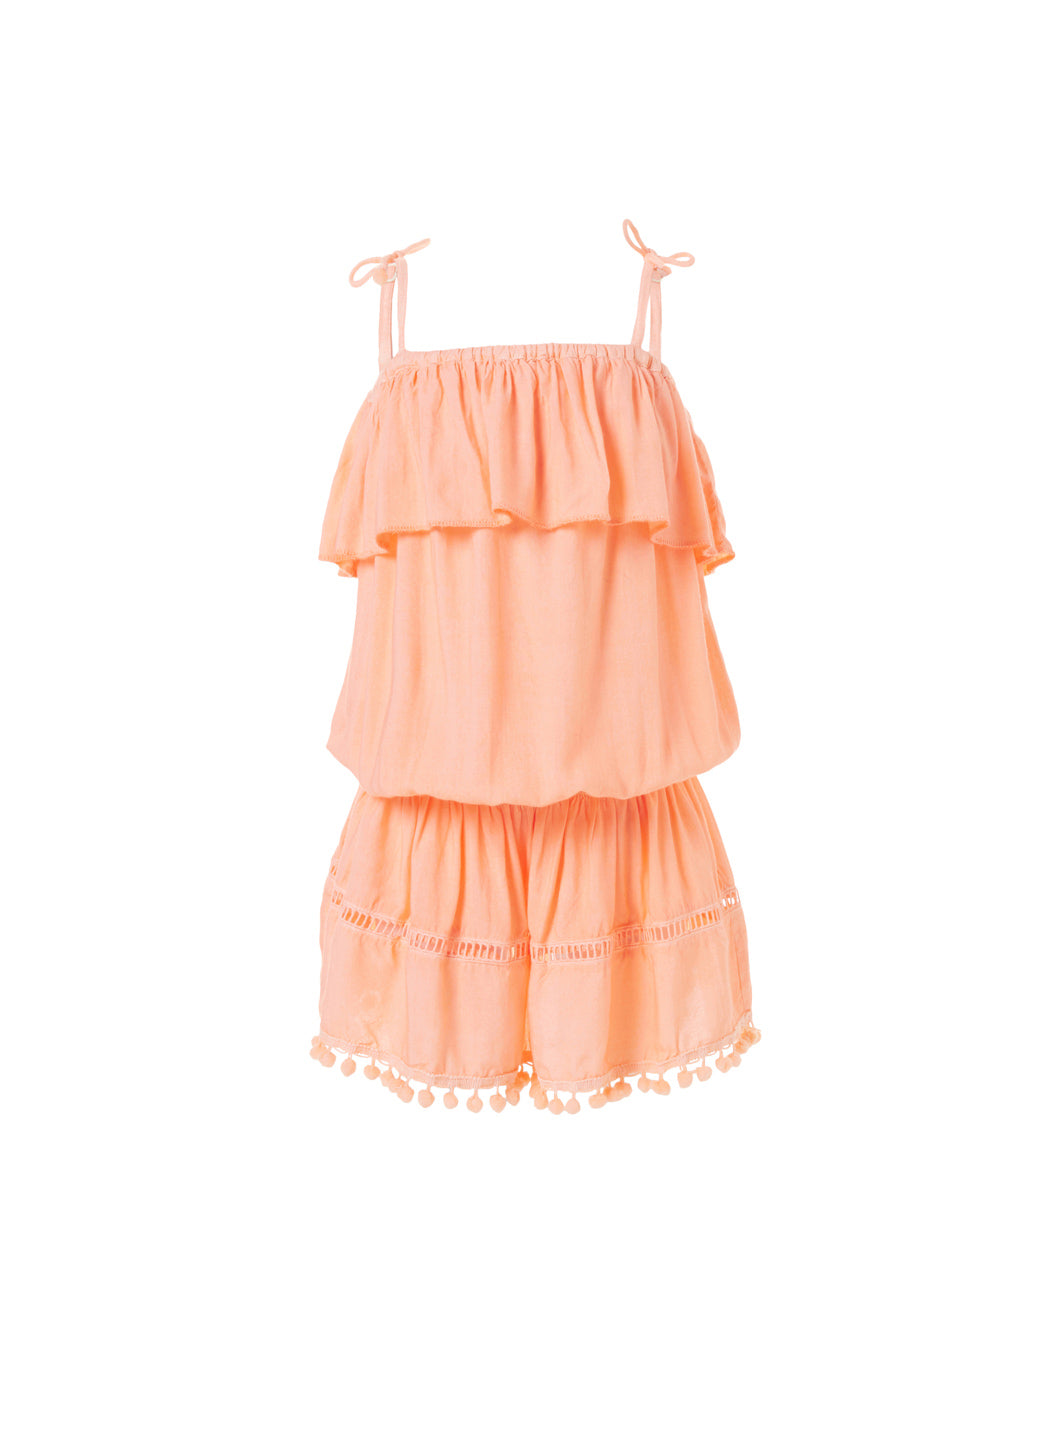 Baby Joy Mango Beach Dress